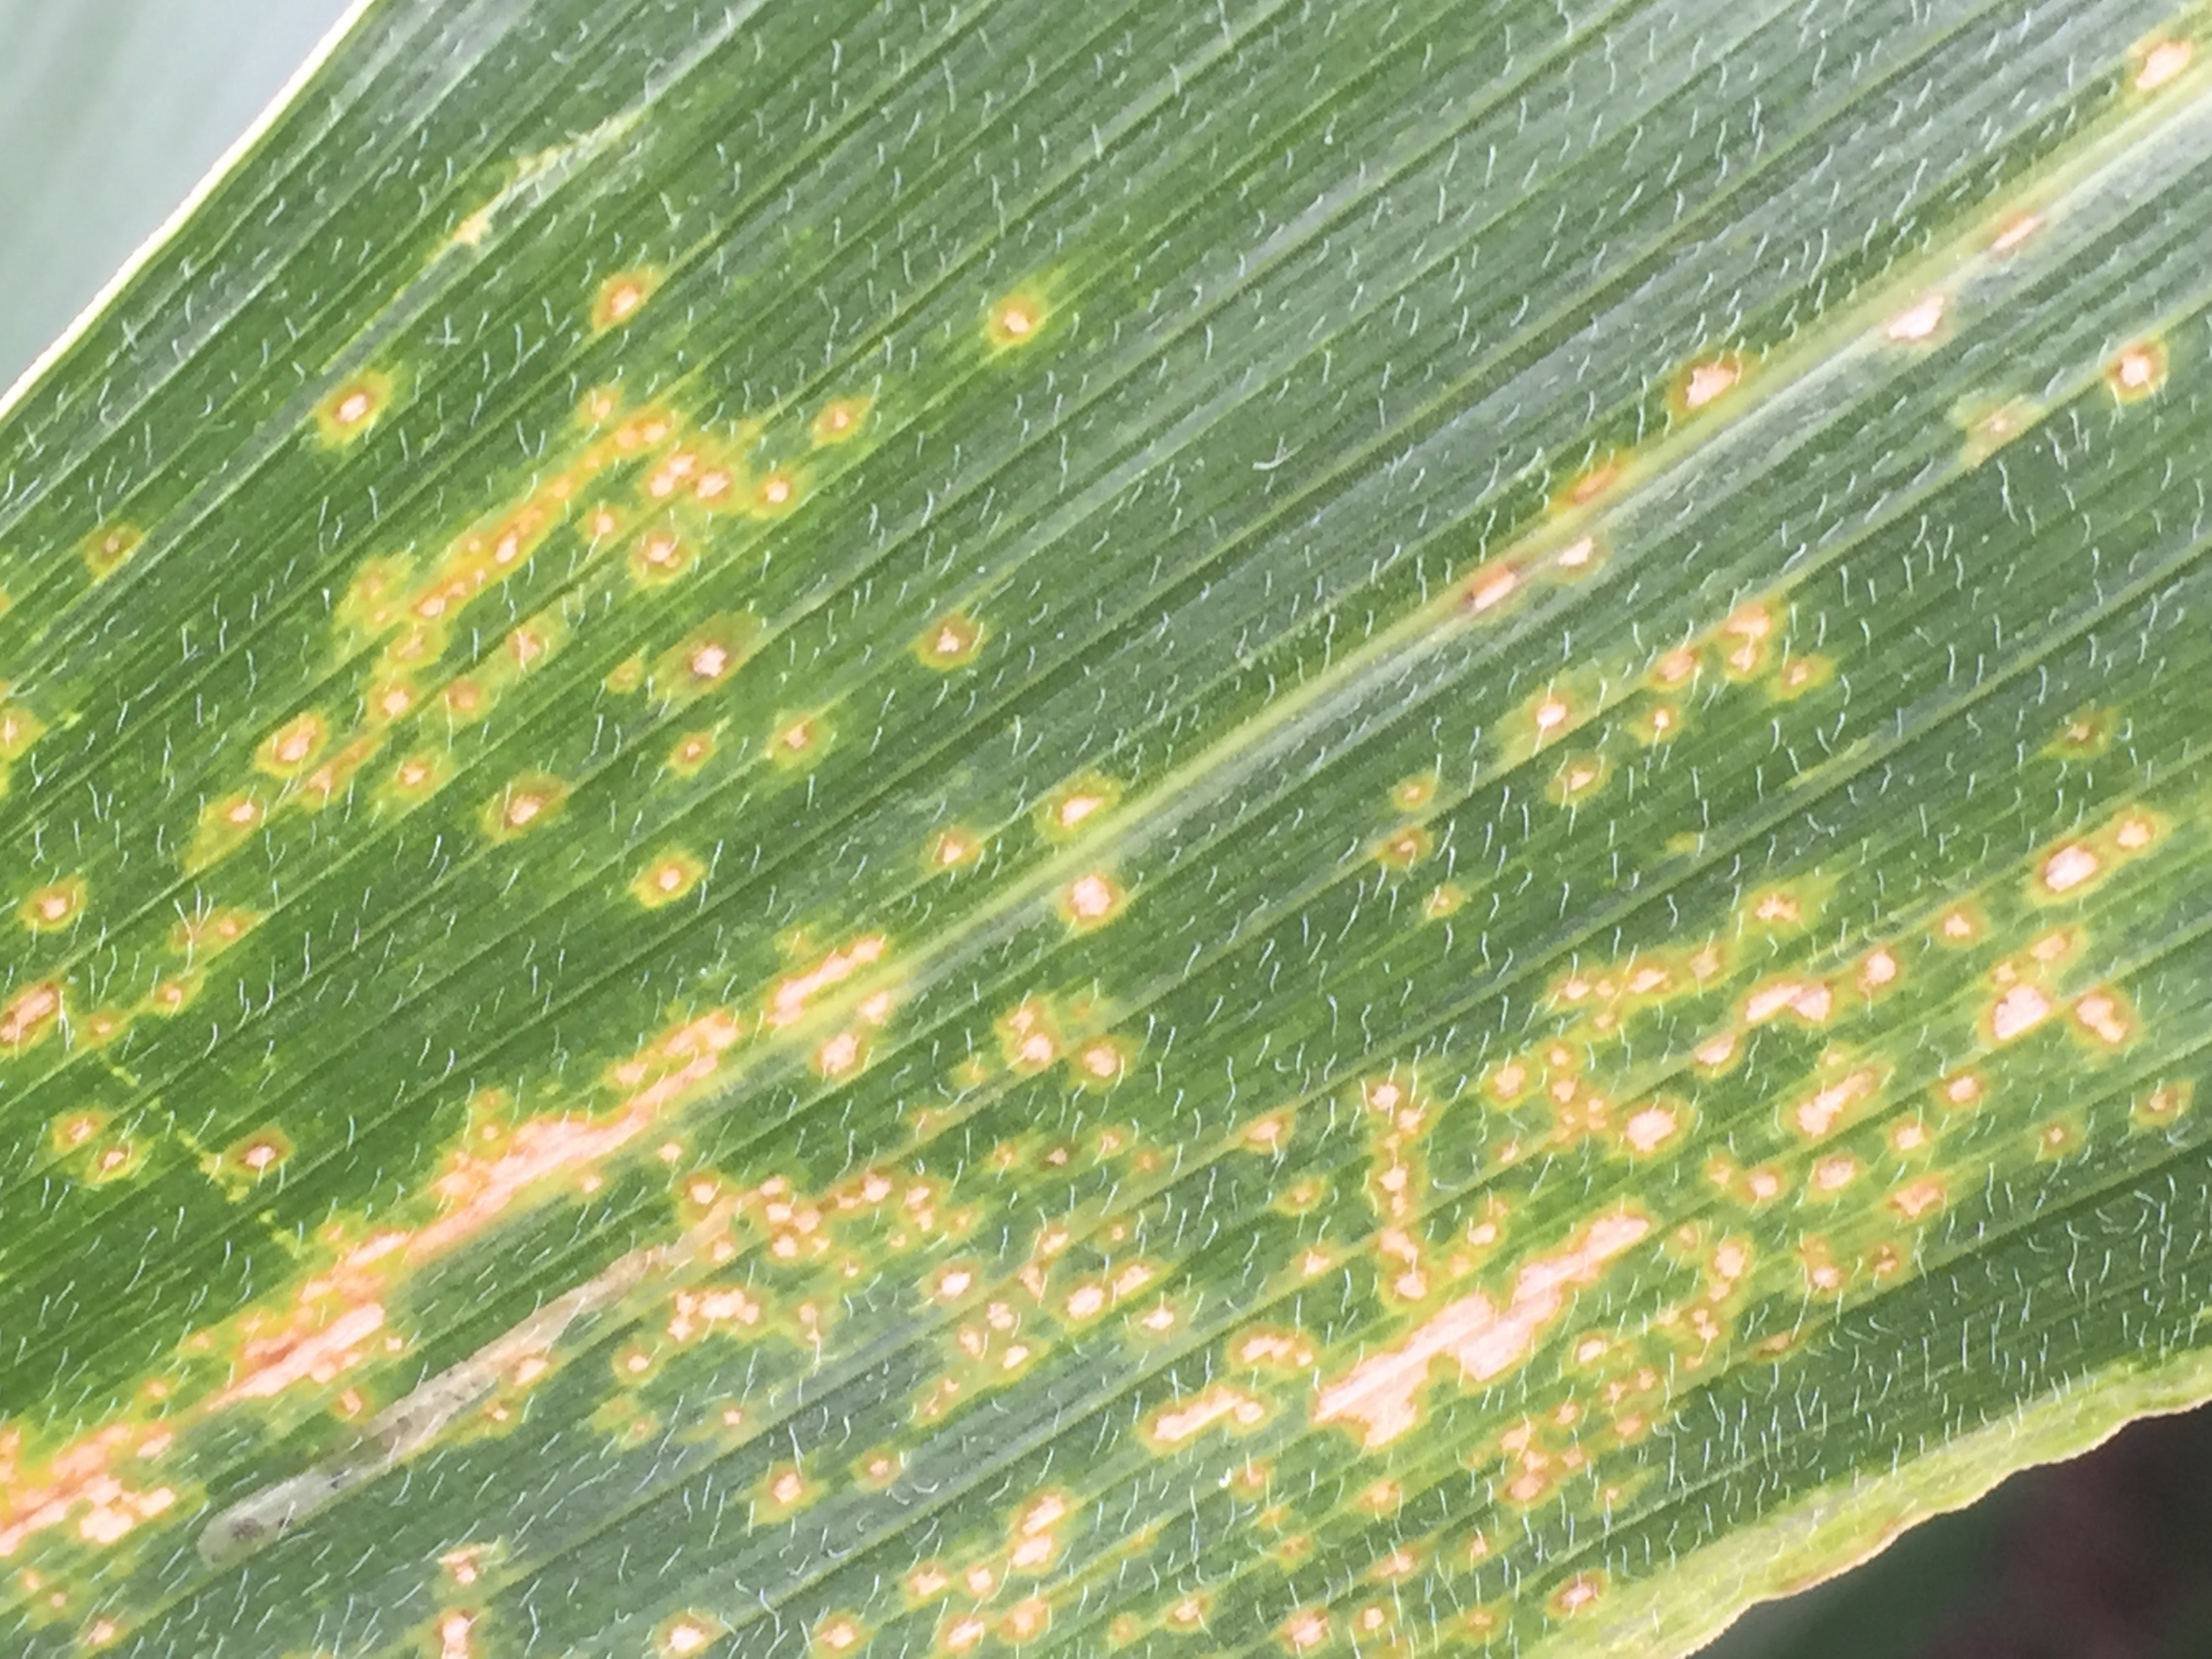 Eyespot lesions on corn leaf.